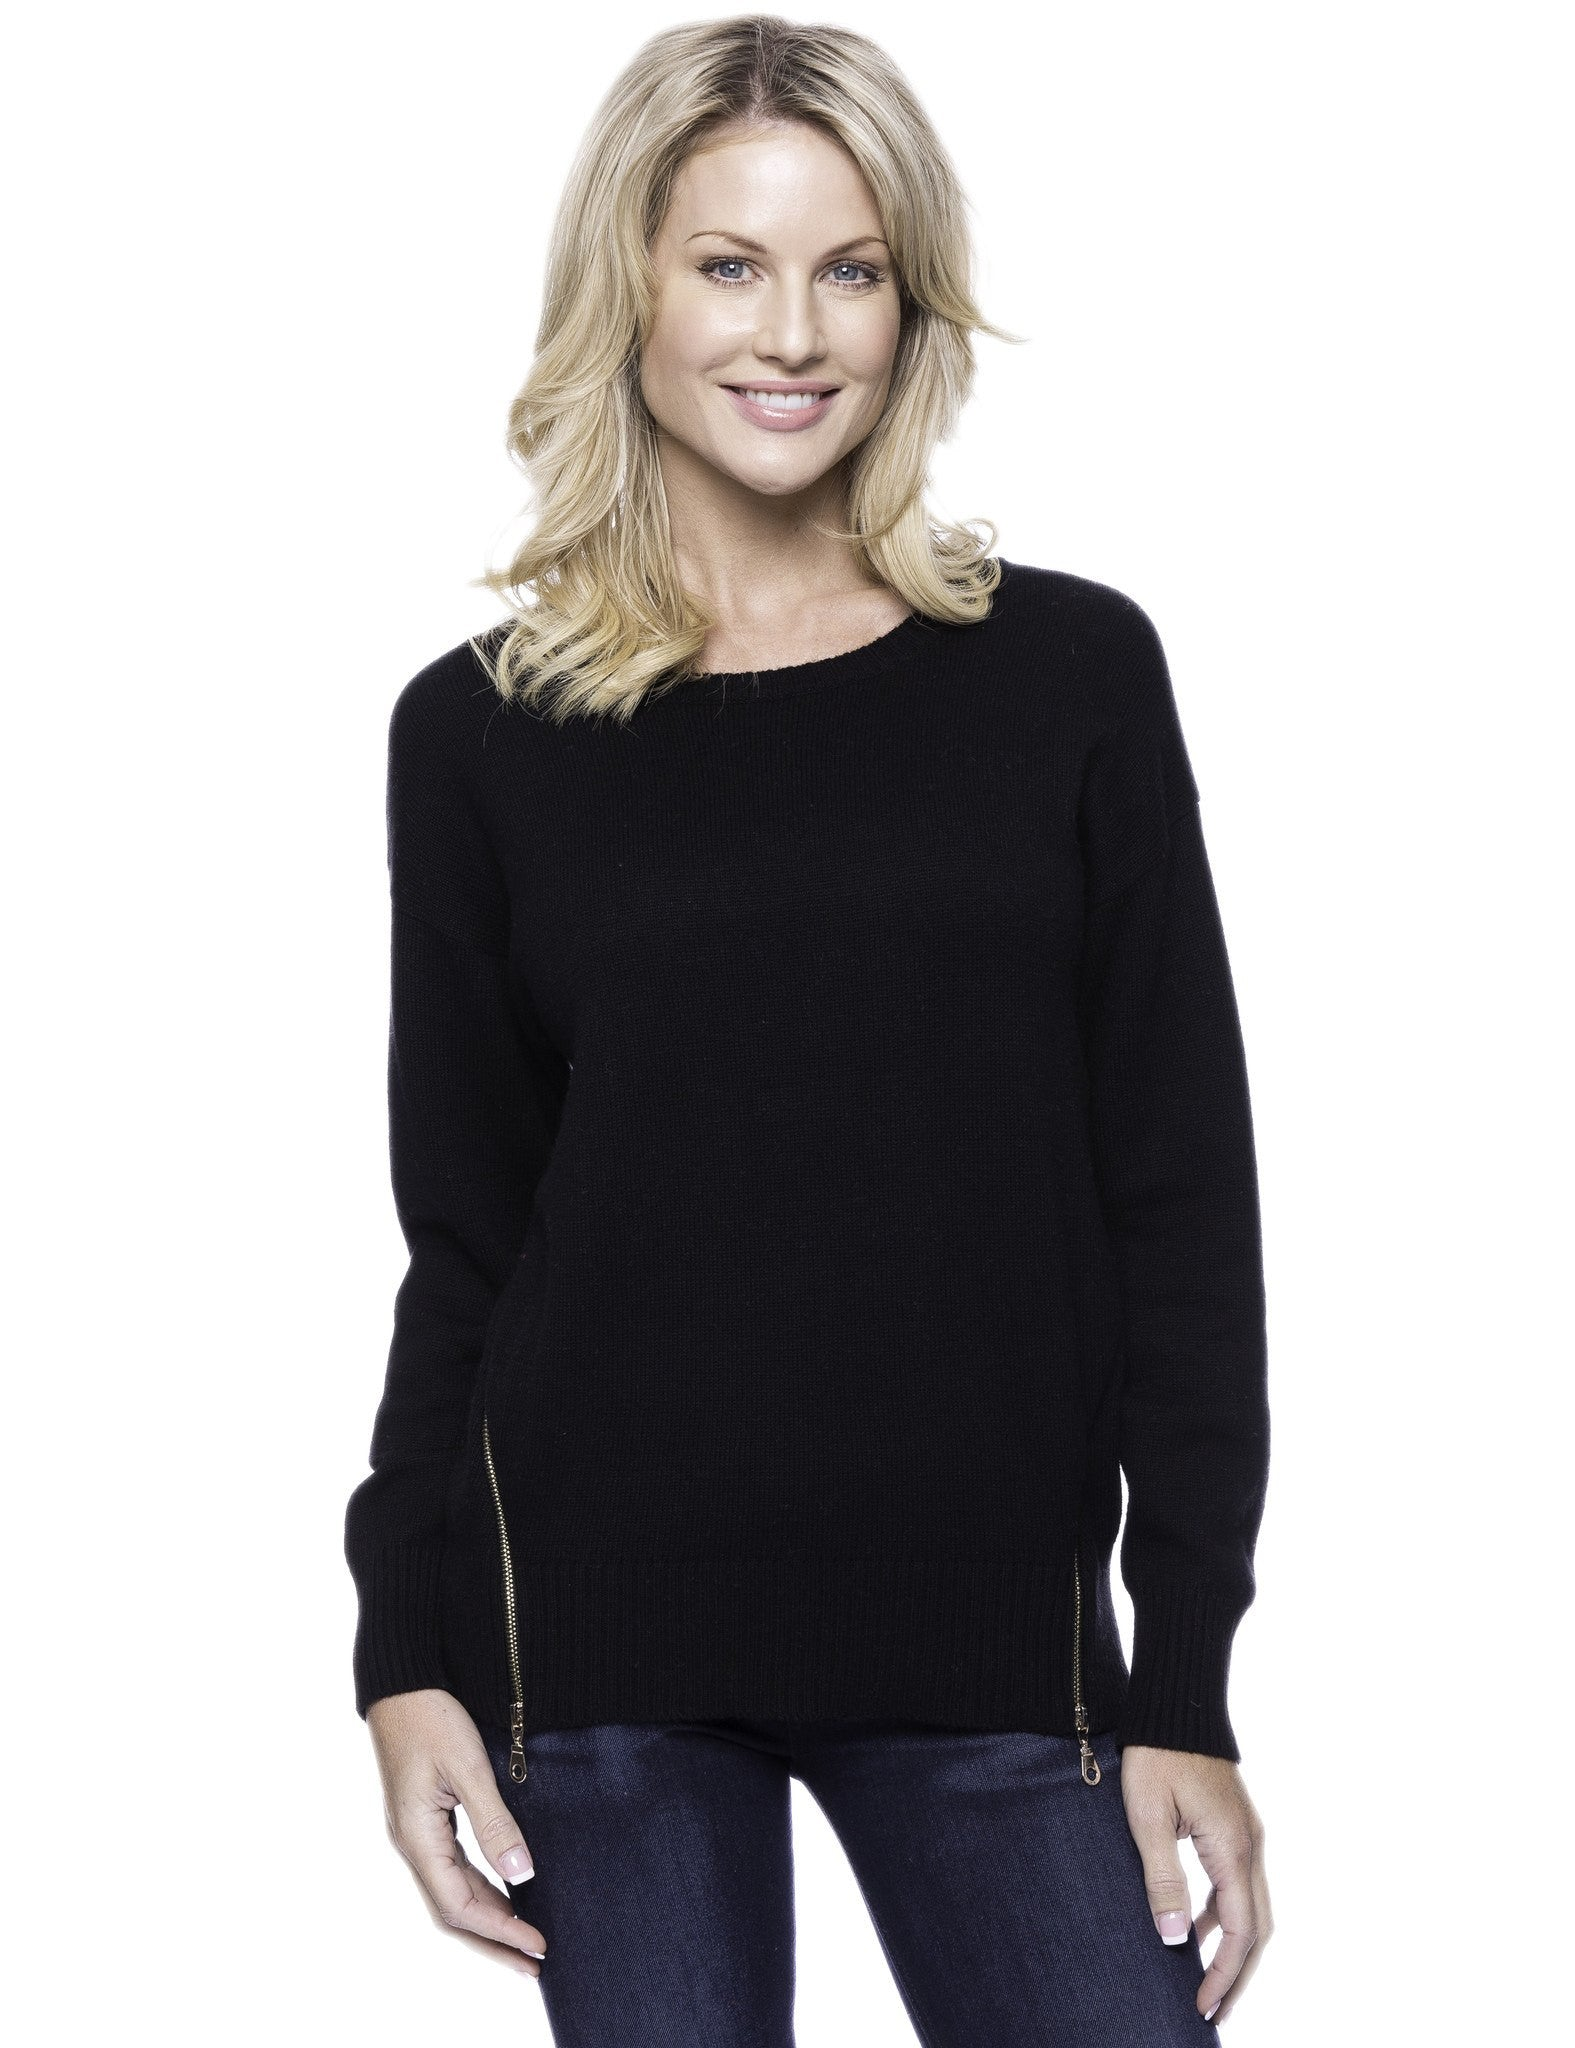 Cashmere Blend Crew Neck Sweater with Side Zip - Black